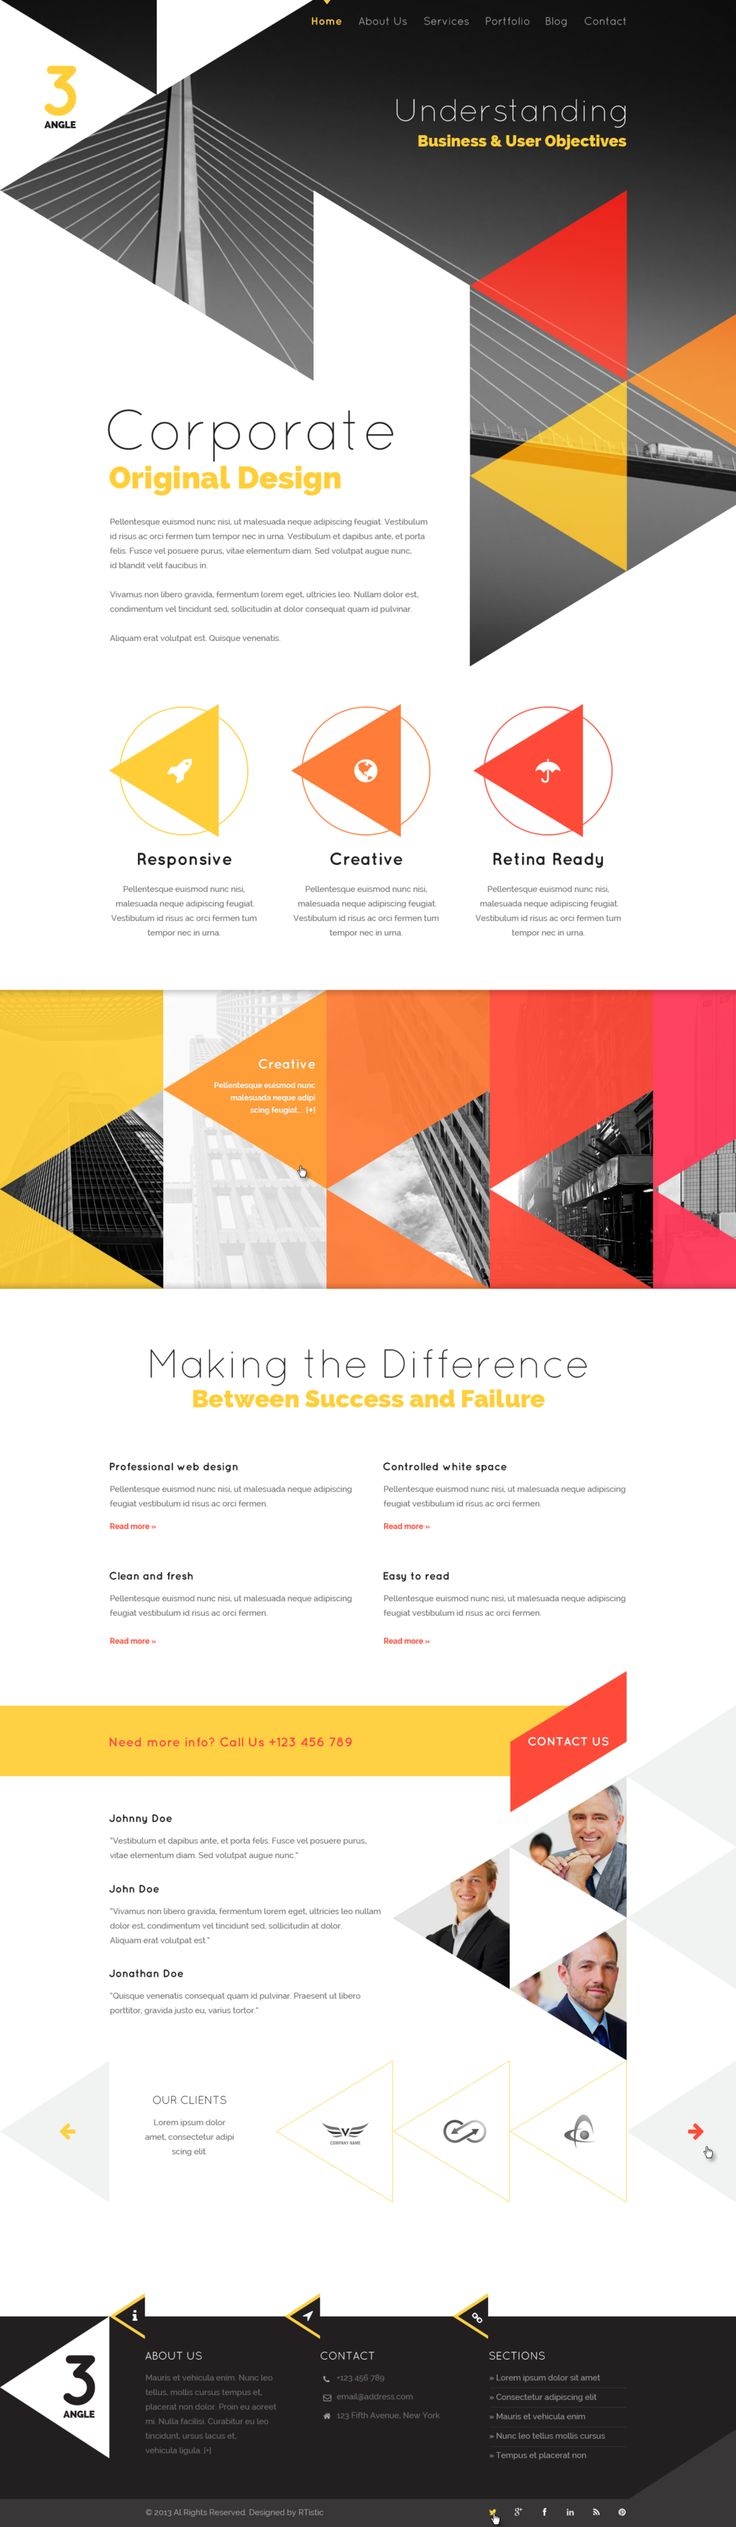 3Angle - Agency Creative HTML Template by sandracz.deviantart.com on @deviantART